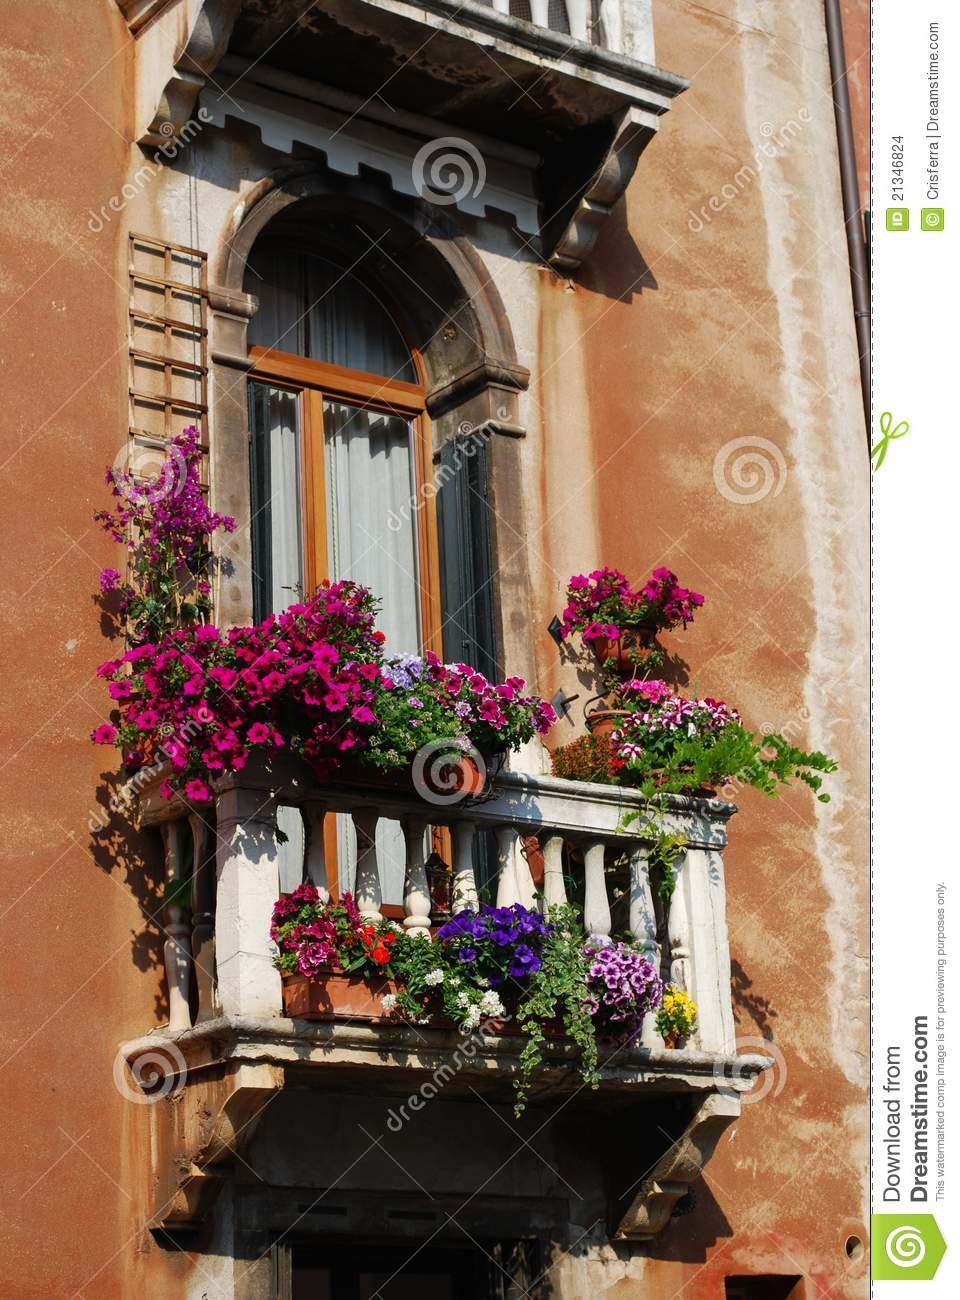 Window With Balcony And Flowers Stock Photo  Image 21346824